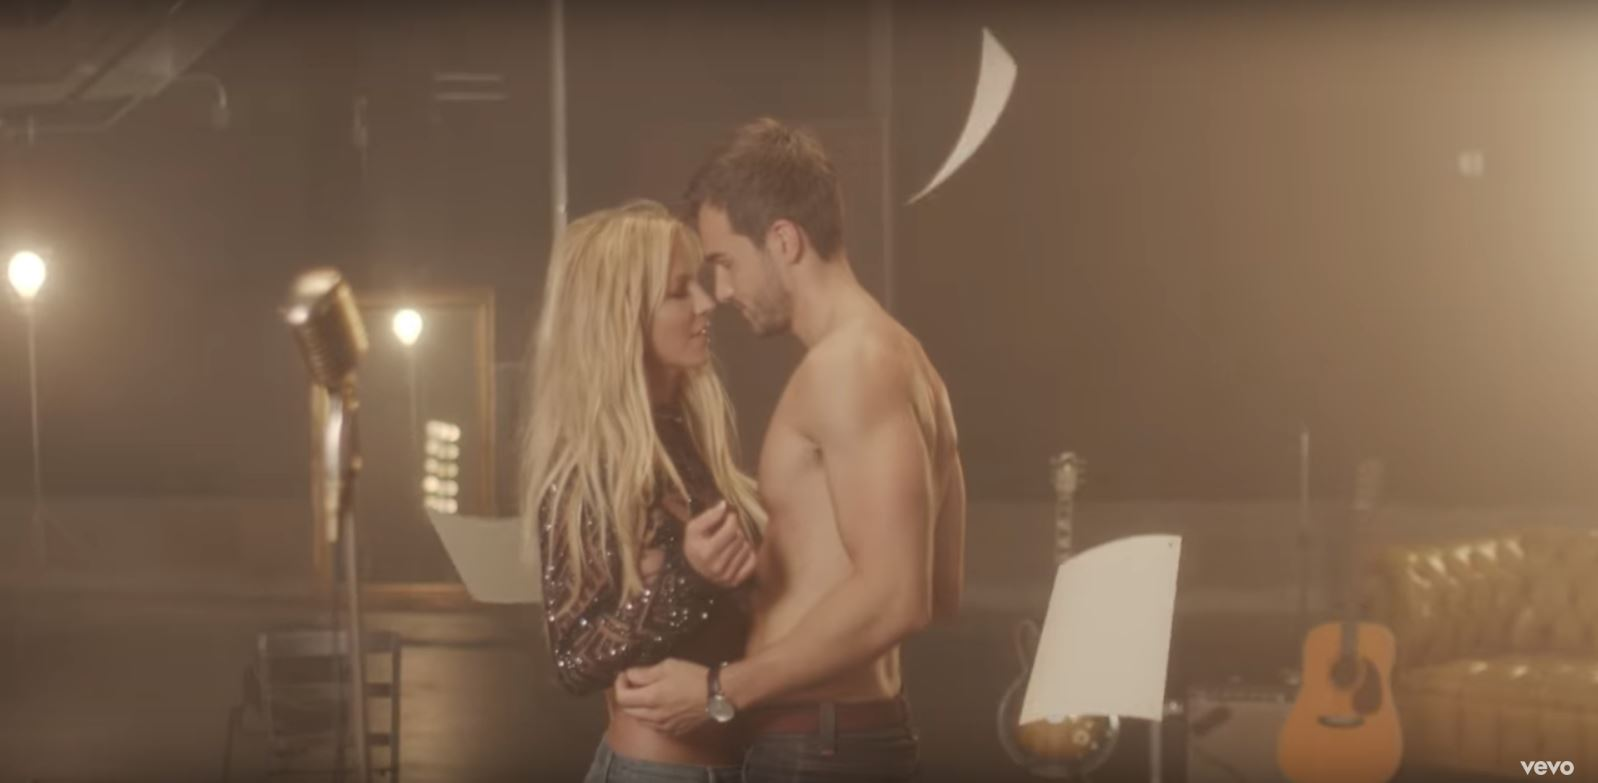 The two in the music video